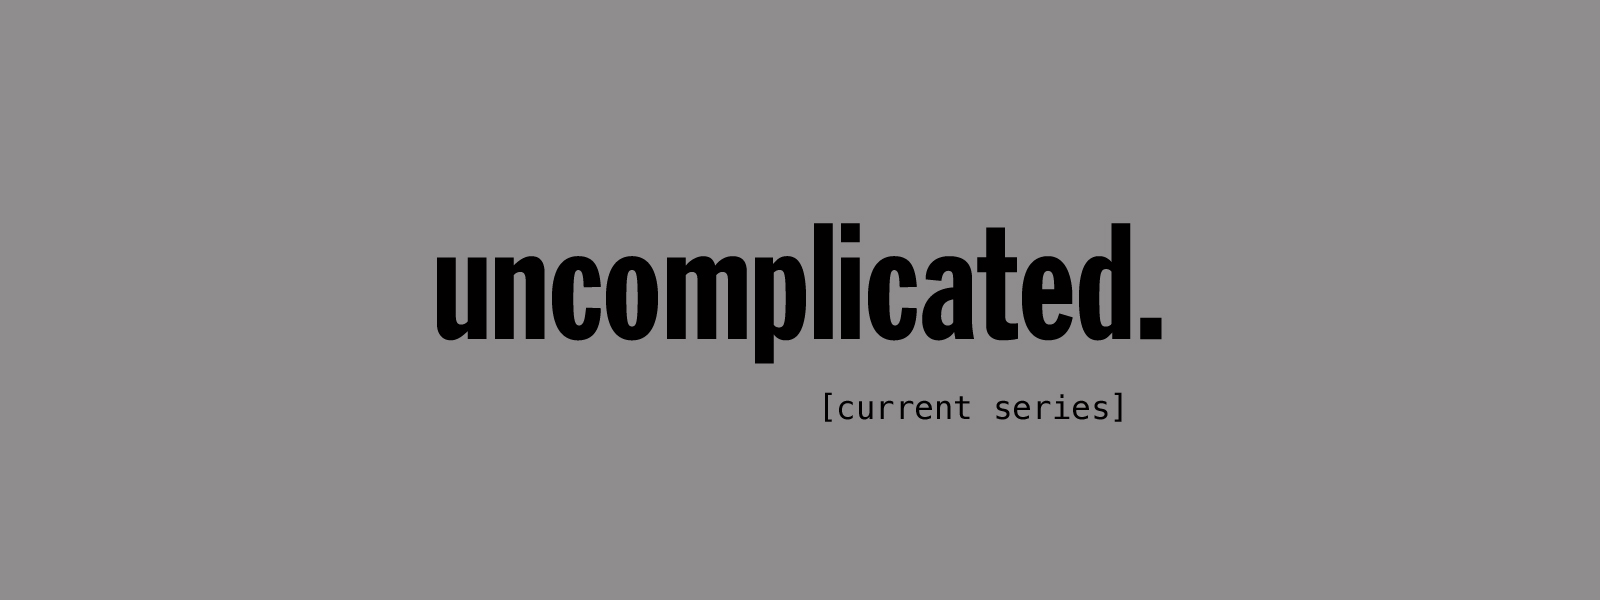 uncomplicated_slider-1